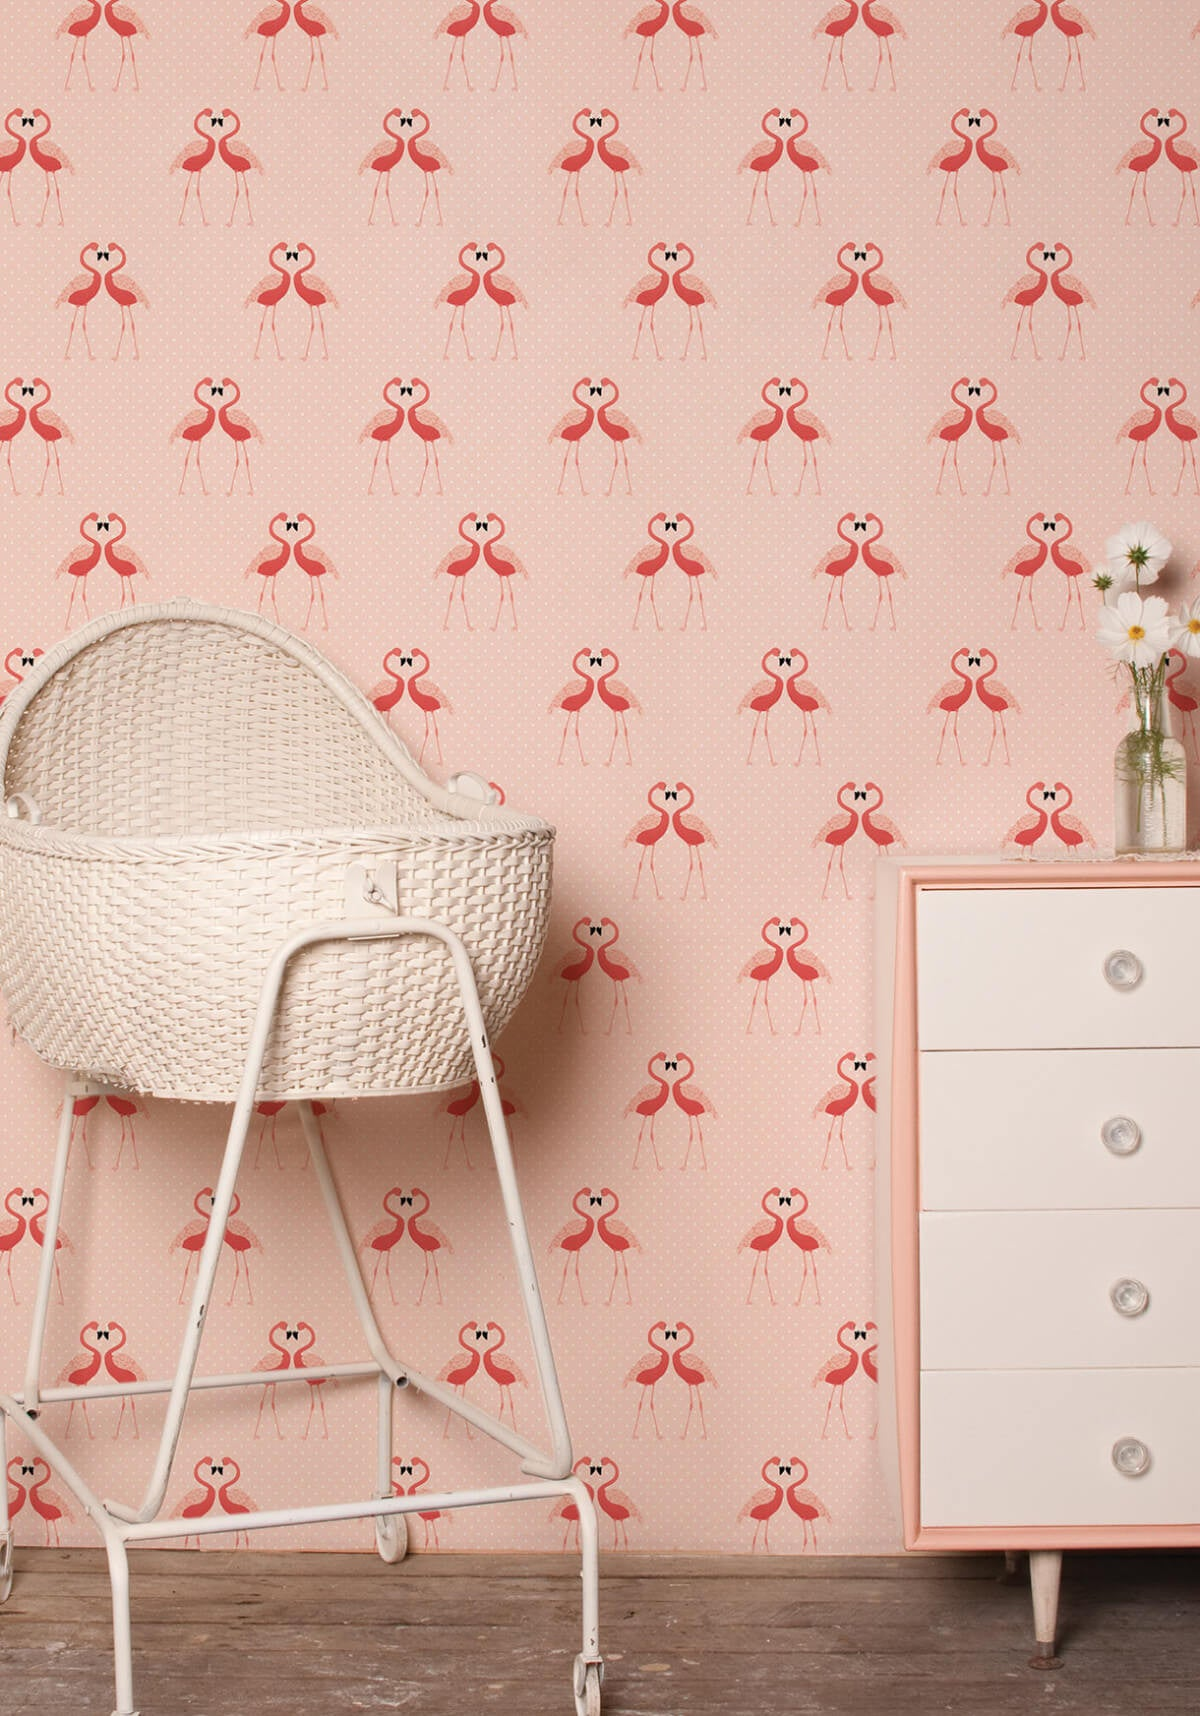 Calendar Wallpaper Love Mae : Flamingos wallpaper from the love mae collection by milton